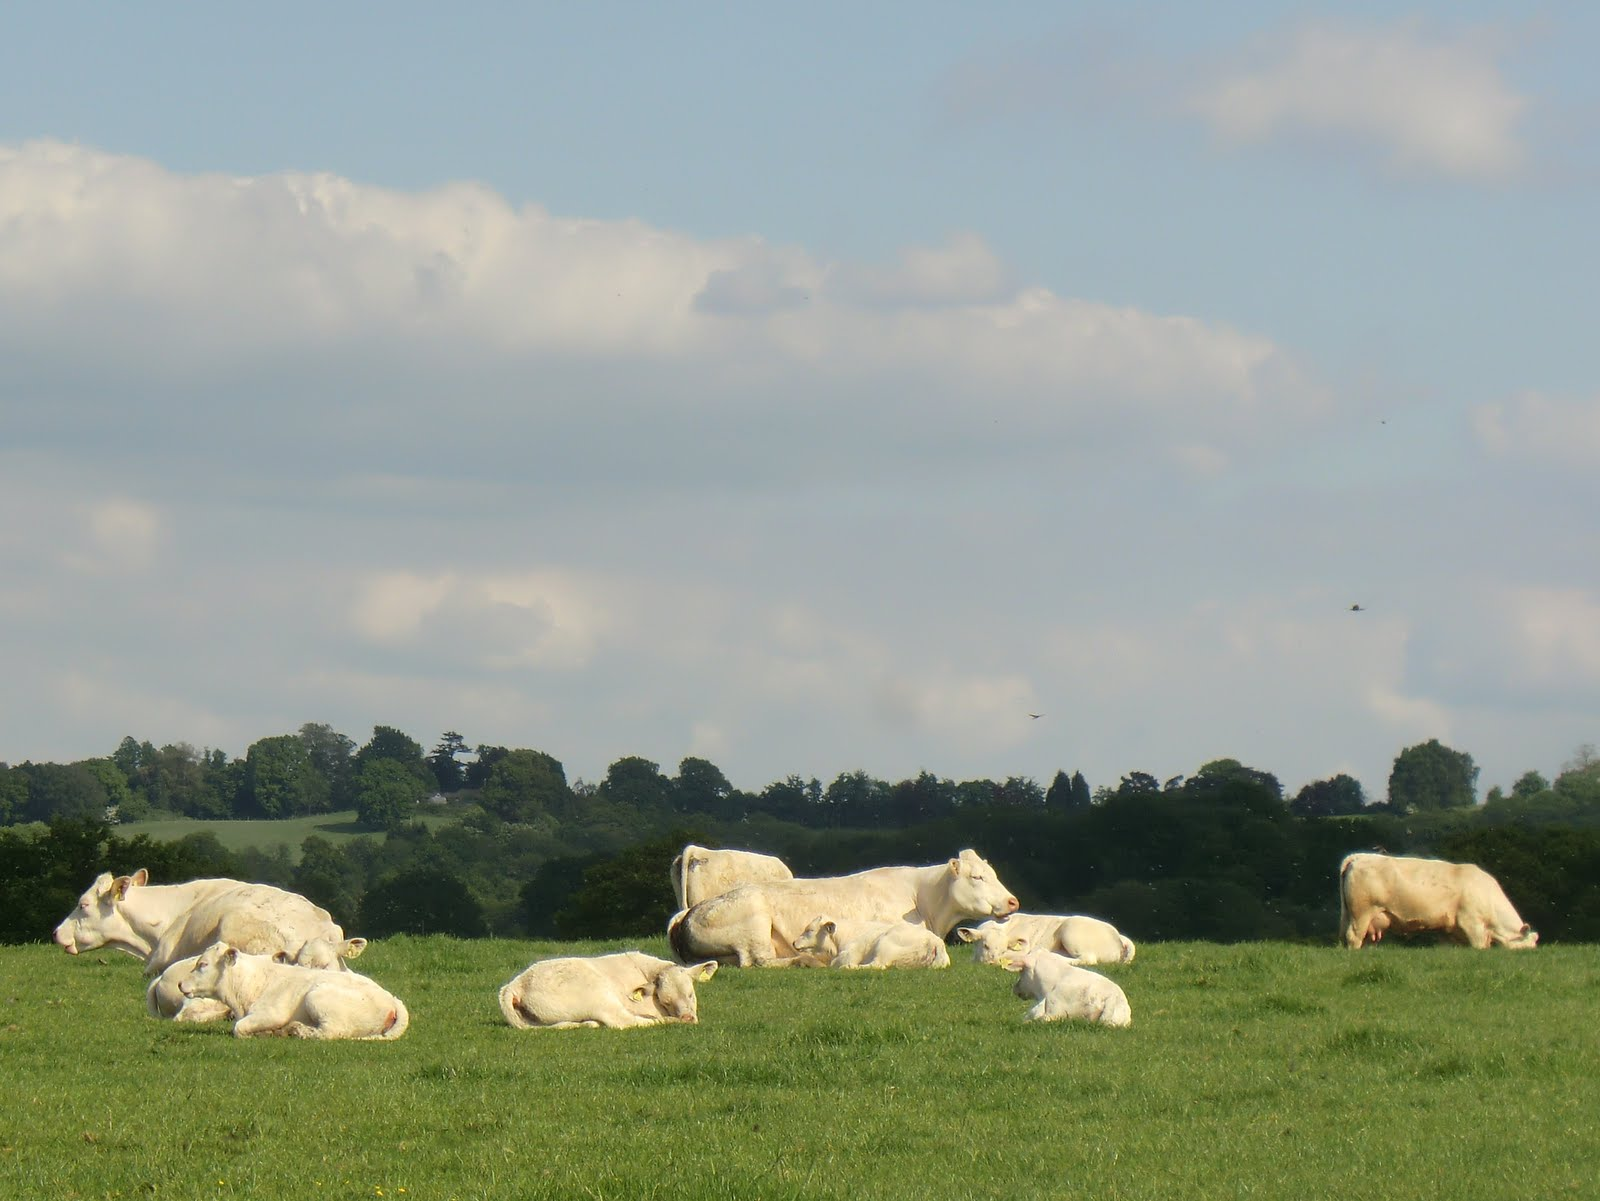 CIMG7130 Charolais cattle, Ensfield